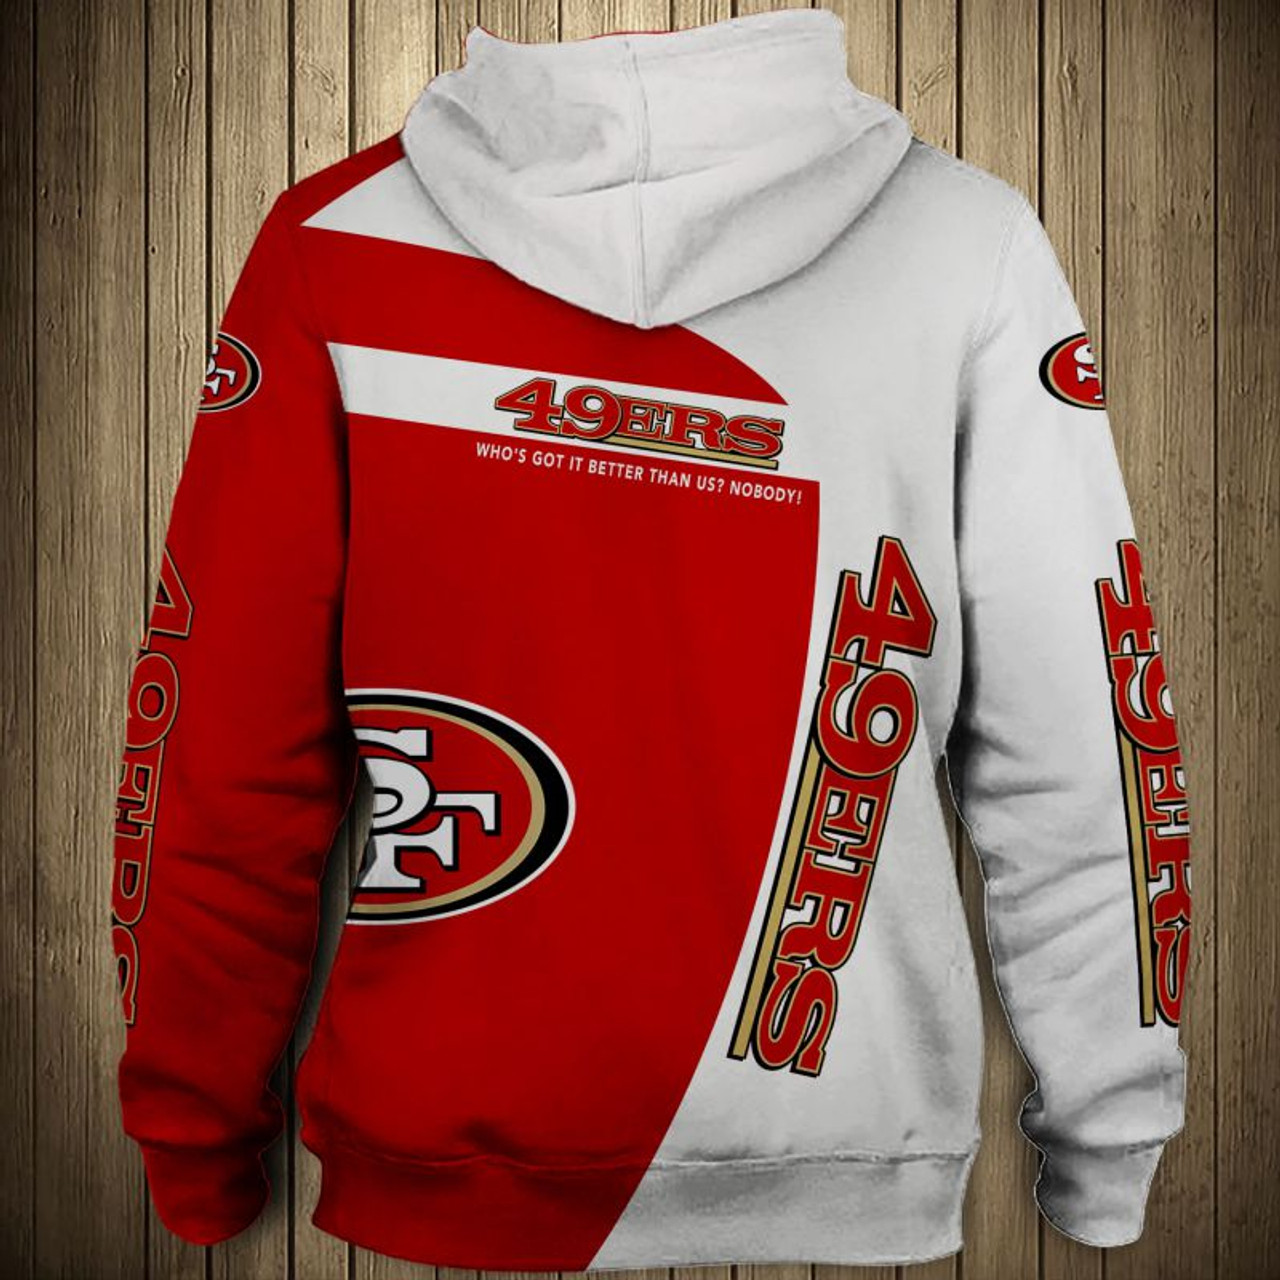 **(OFFICIAL-N.F.L.SAN-FRANCISCO-49ERS-FASHION-PULLOVER-TEAM-HOODIES/CUSTOM-3D-GRAPHIC-PRINTED-DETAILED-DOUBLE-SIDED-DESIGN/CLASSIC-OFFICIAL-49ERS-TEAM-LOGOS & OFFICIAL-49ERS-TEAM-COLORS/WARM-PREMIUM-N.F.L.49ERS-TEAM/GAME-DAY-PULLOVER-HOODIES)**